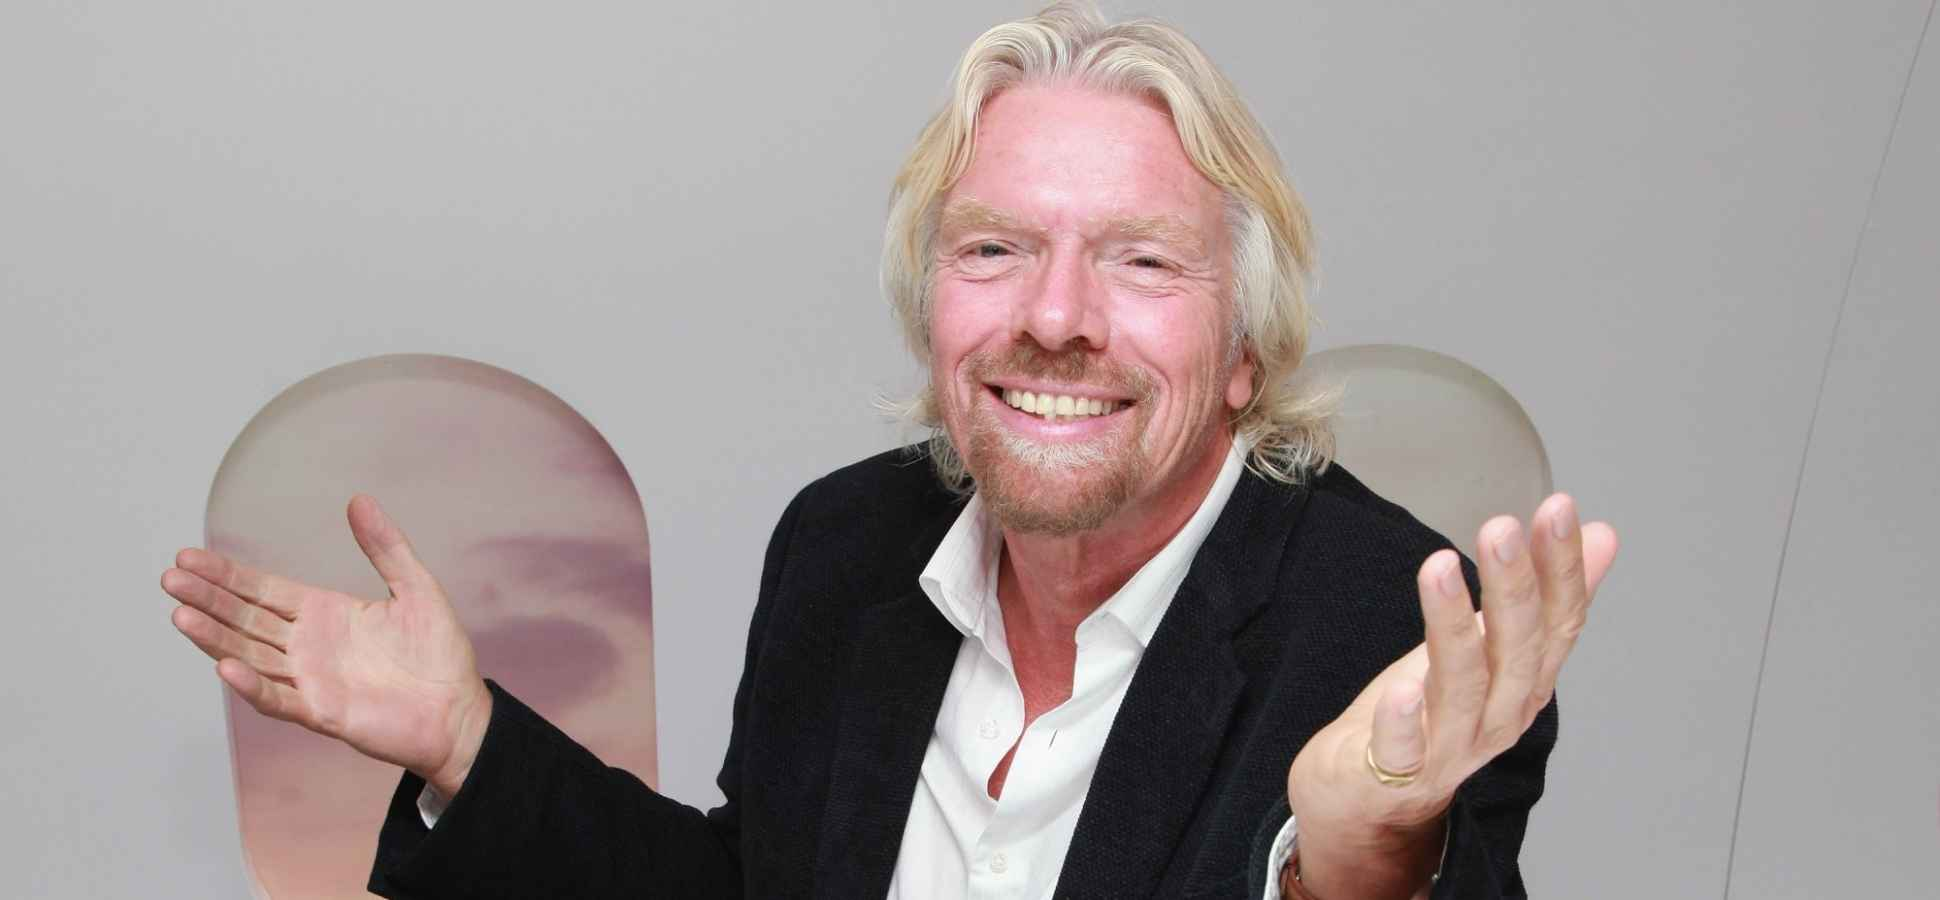 Richard Branson's 10 Steps to Becoming an Exceptional Leader